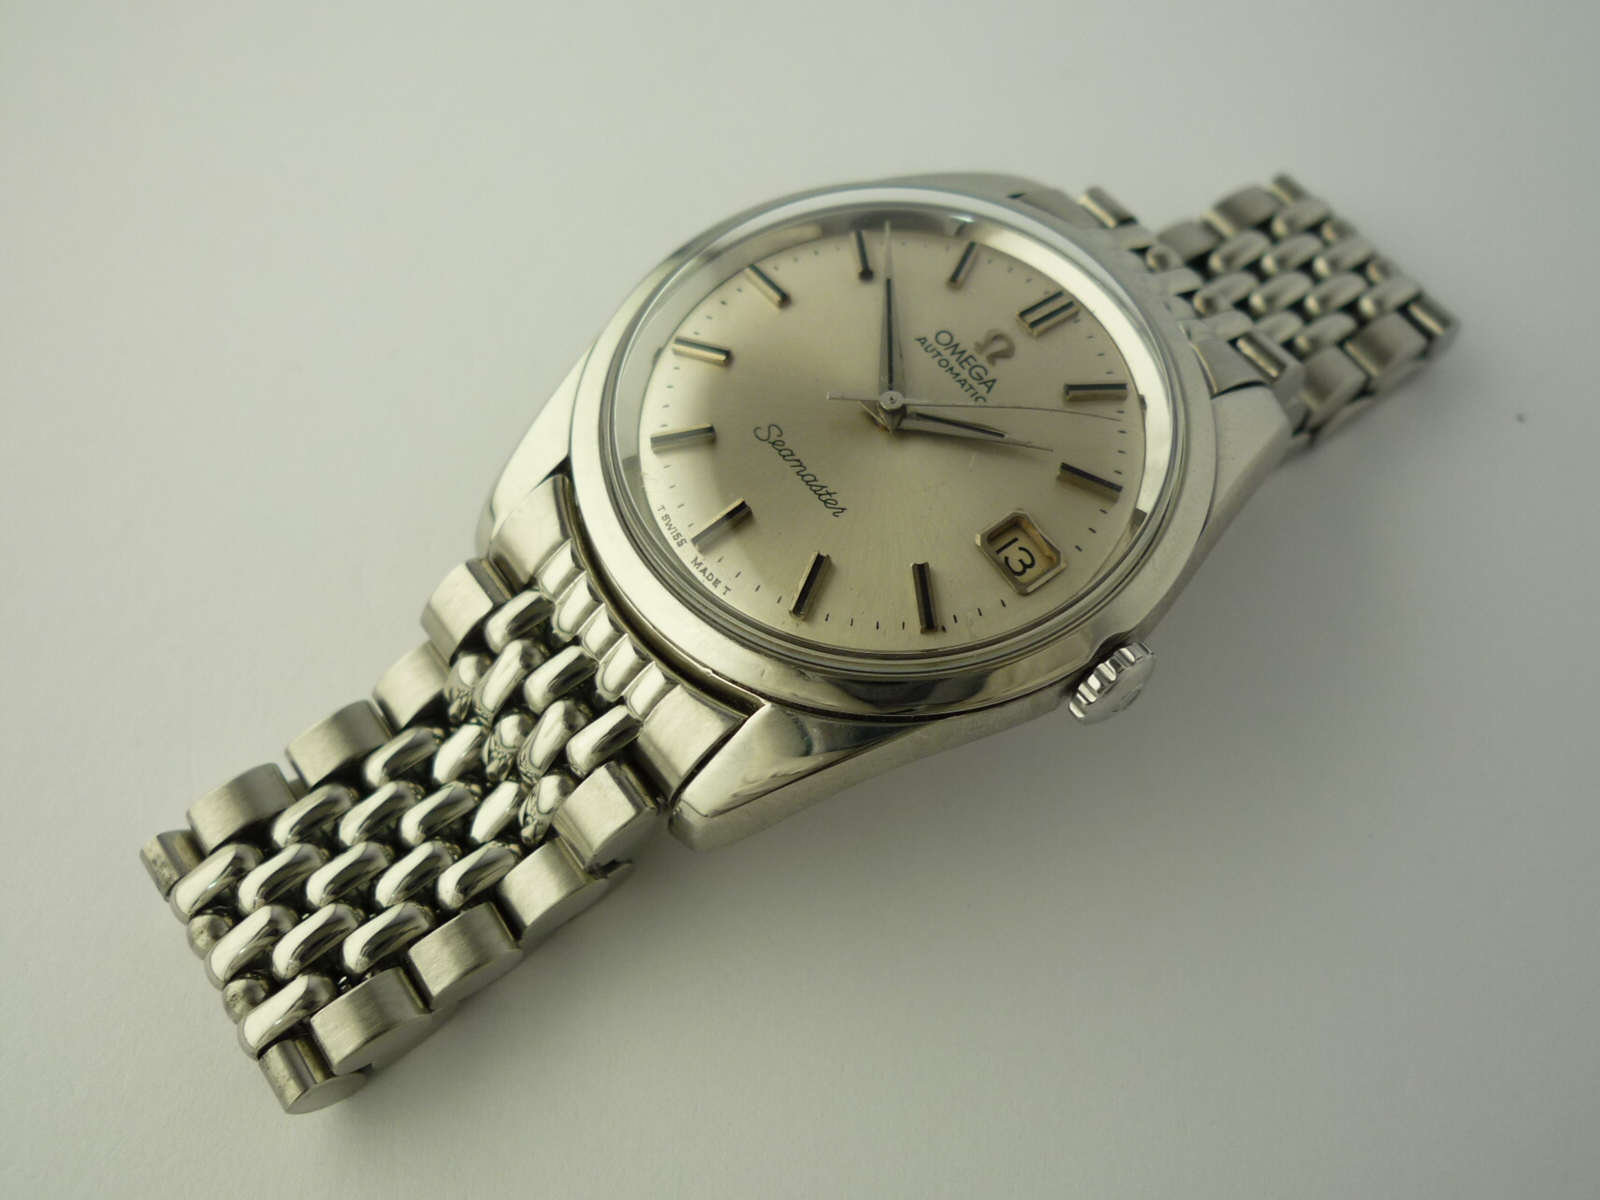 Omega Seamaster watch ref 166010 (1966)